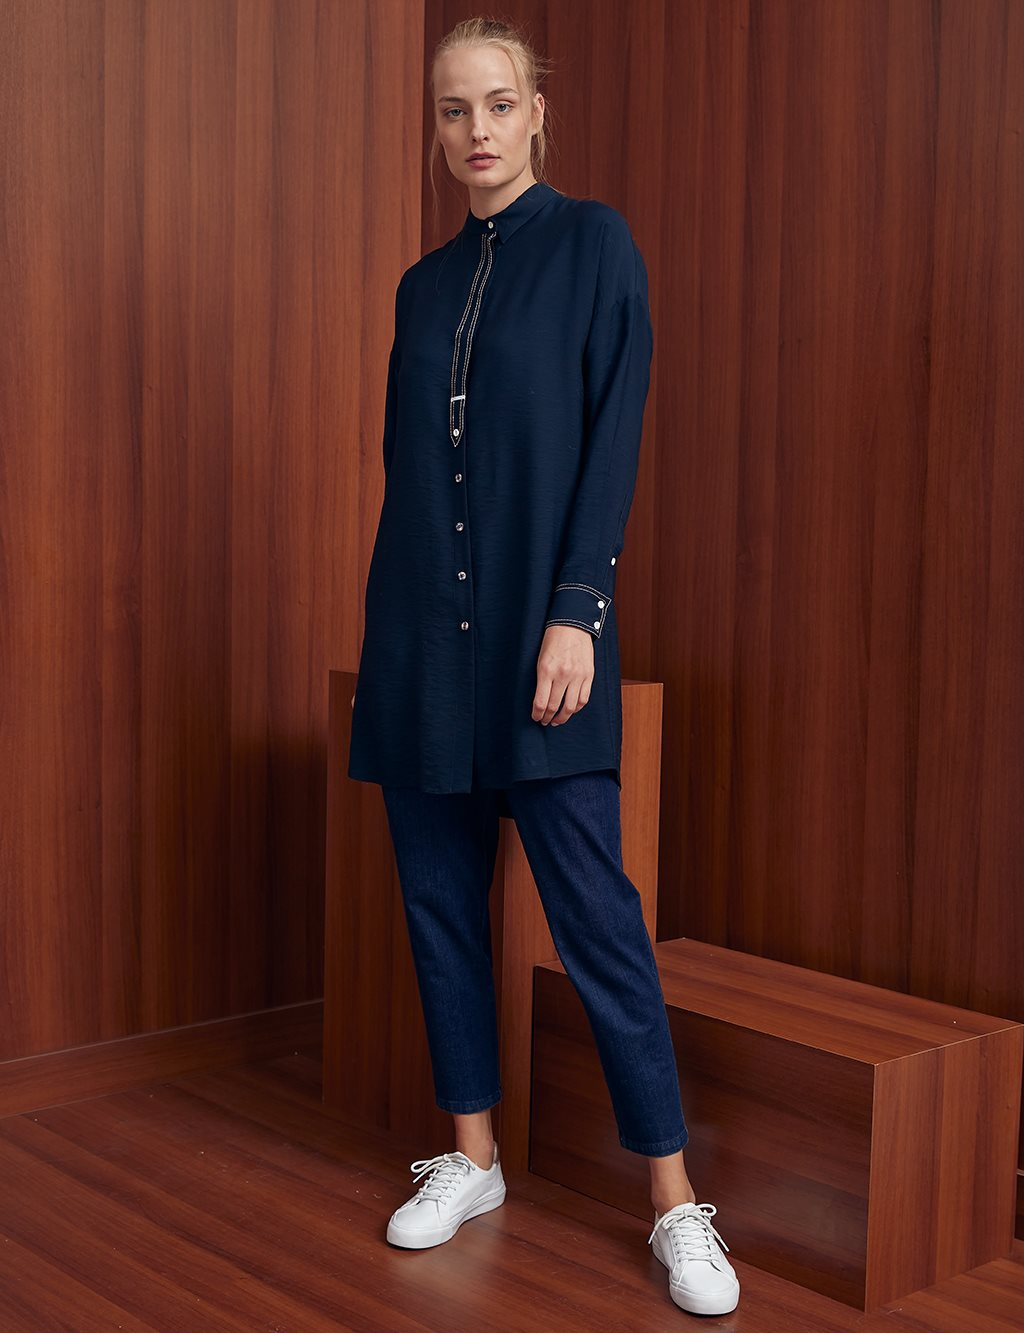 Contrast Stitching Judge Collar Tunic A20 21106 Navy